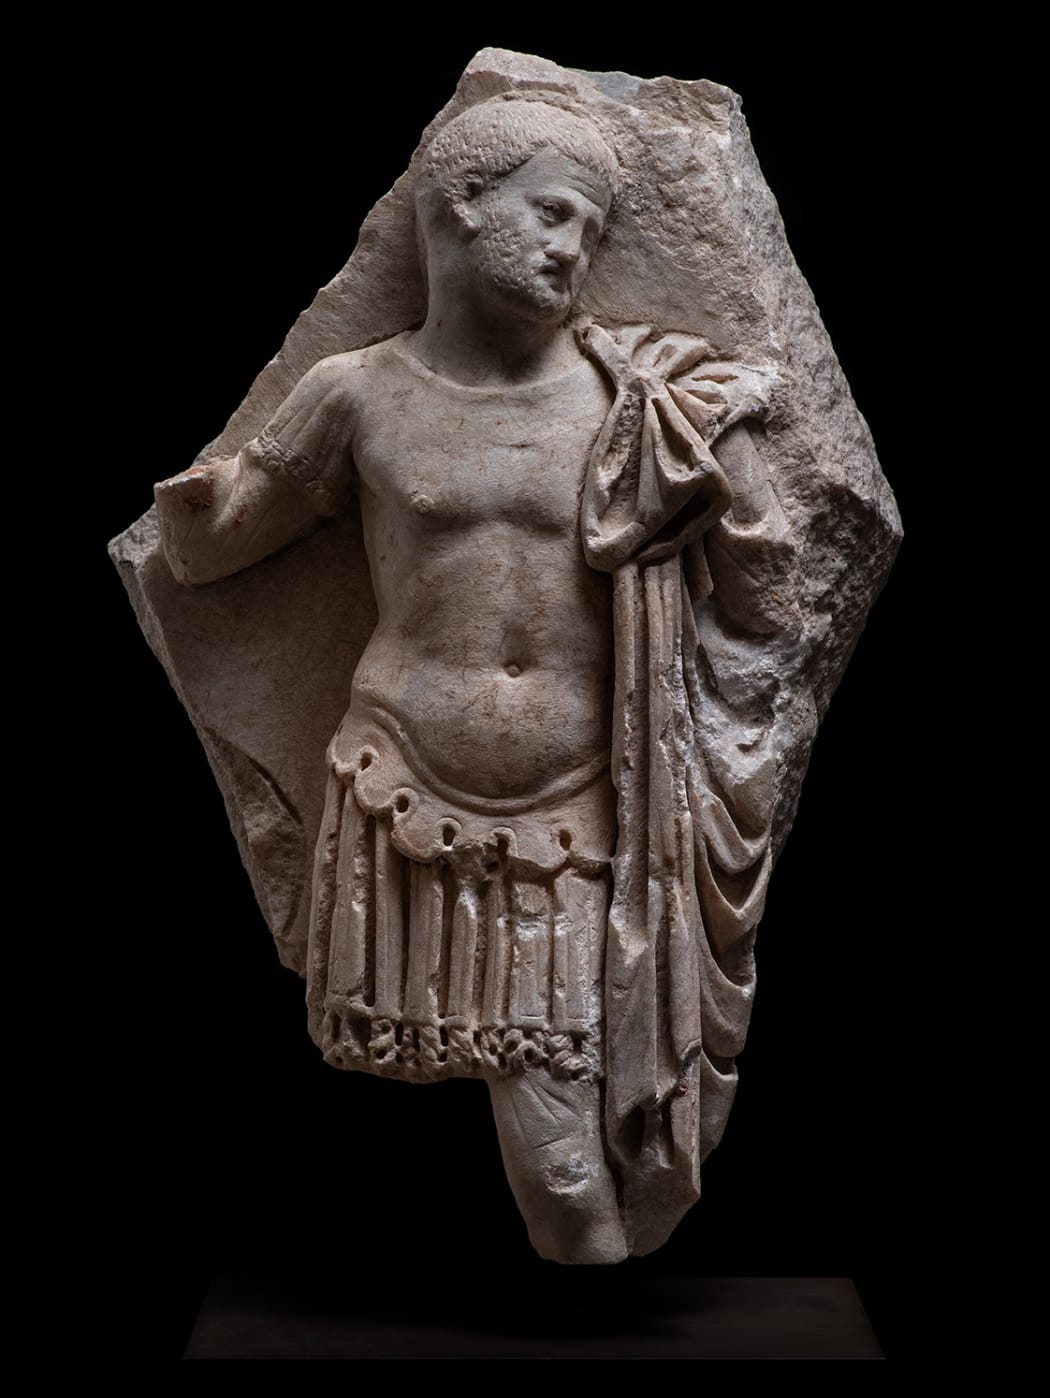 A ROMAN MARBLE RELIEF FRAGMENT OF A GENERAL, Circa 3rd century AD